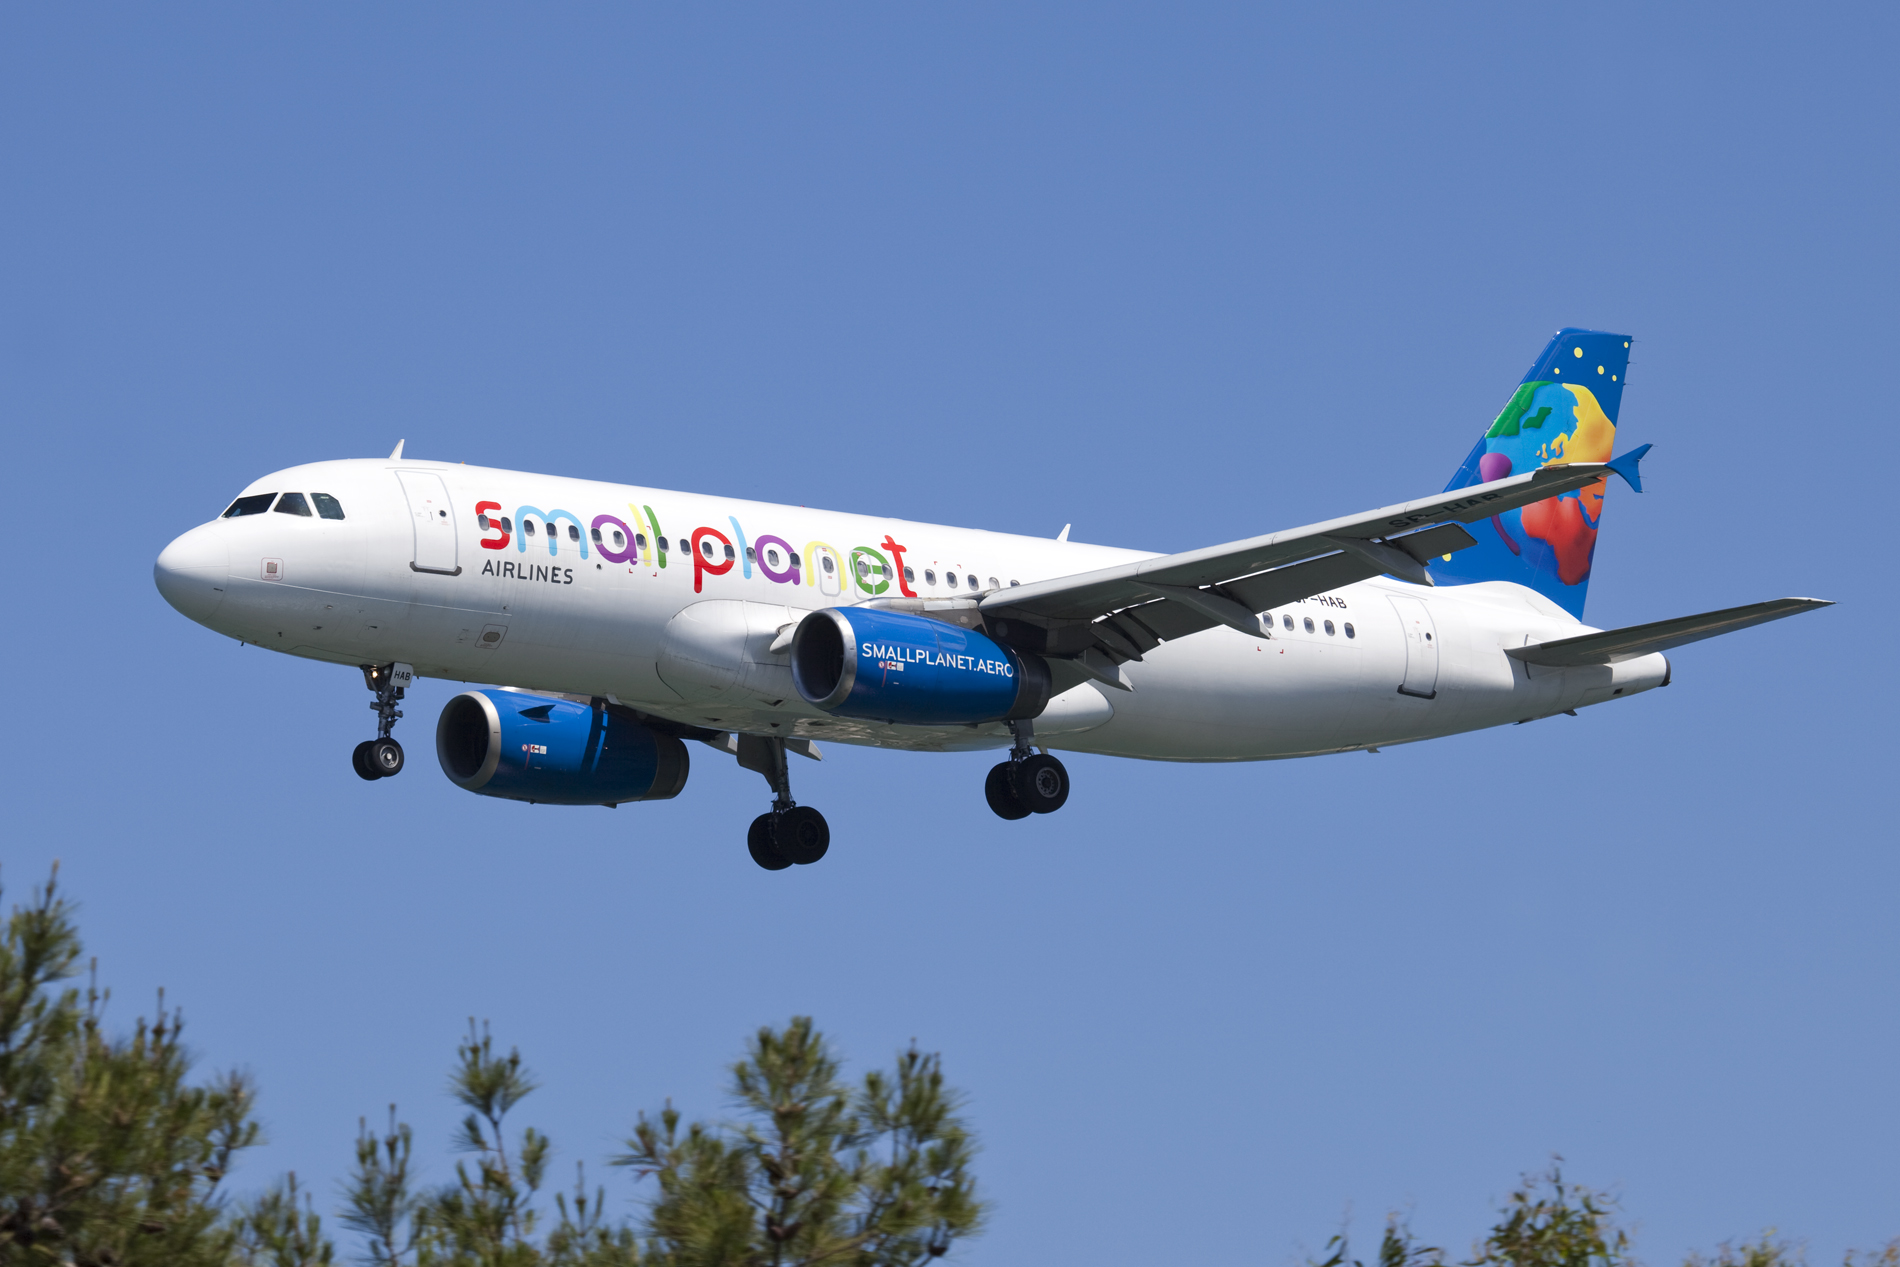 Small planet airlines bewertung